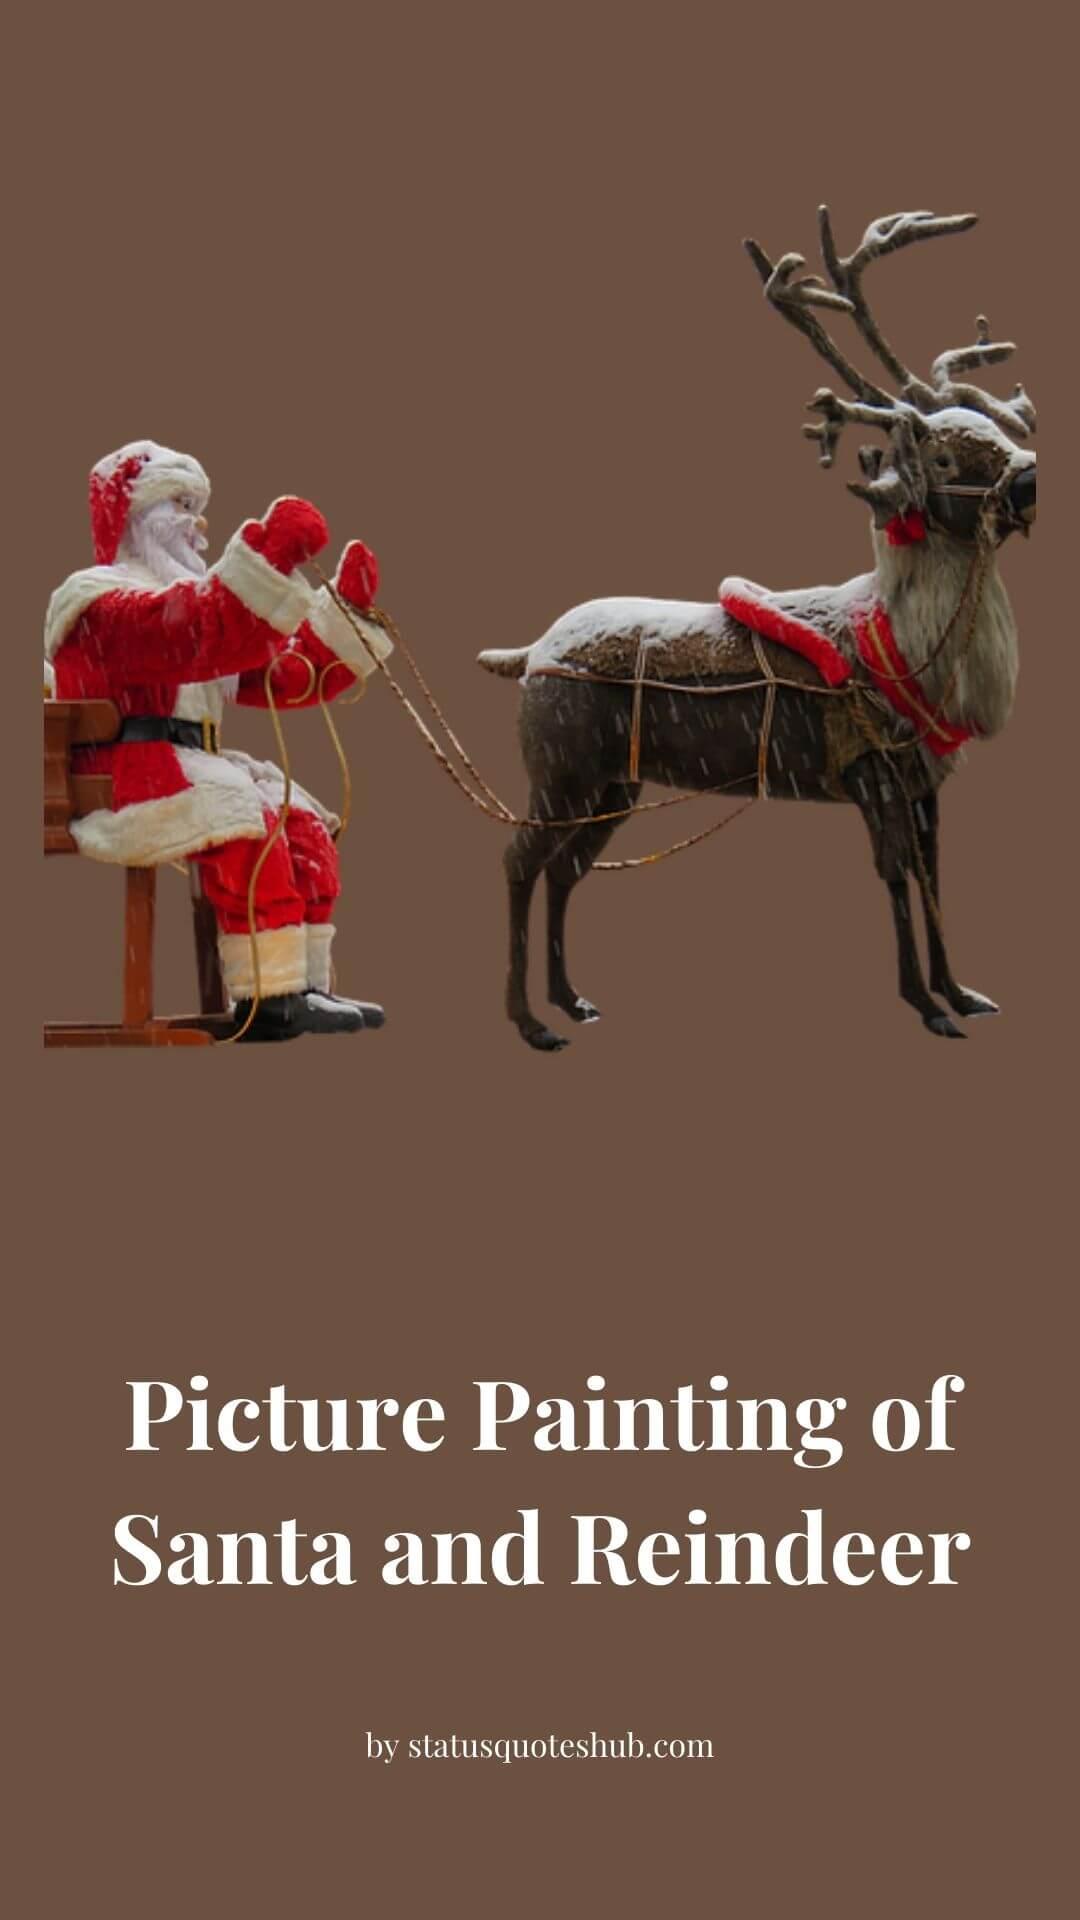 Picture Painting of Santa and Reindeer